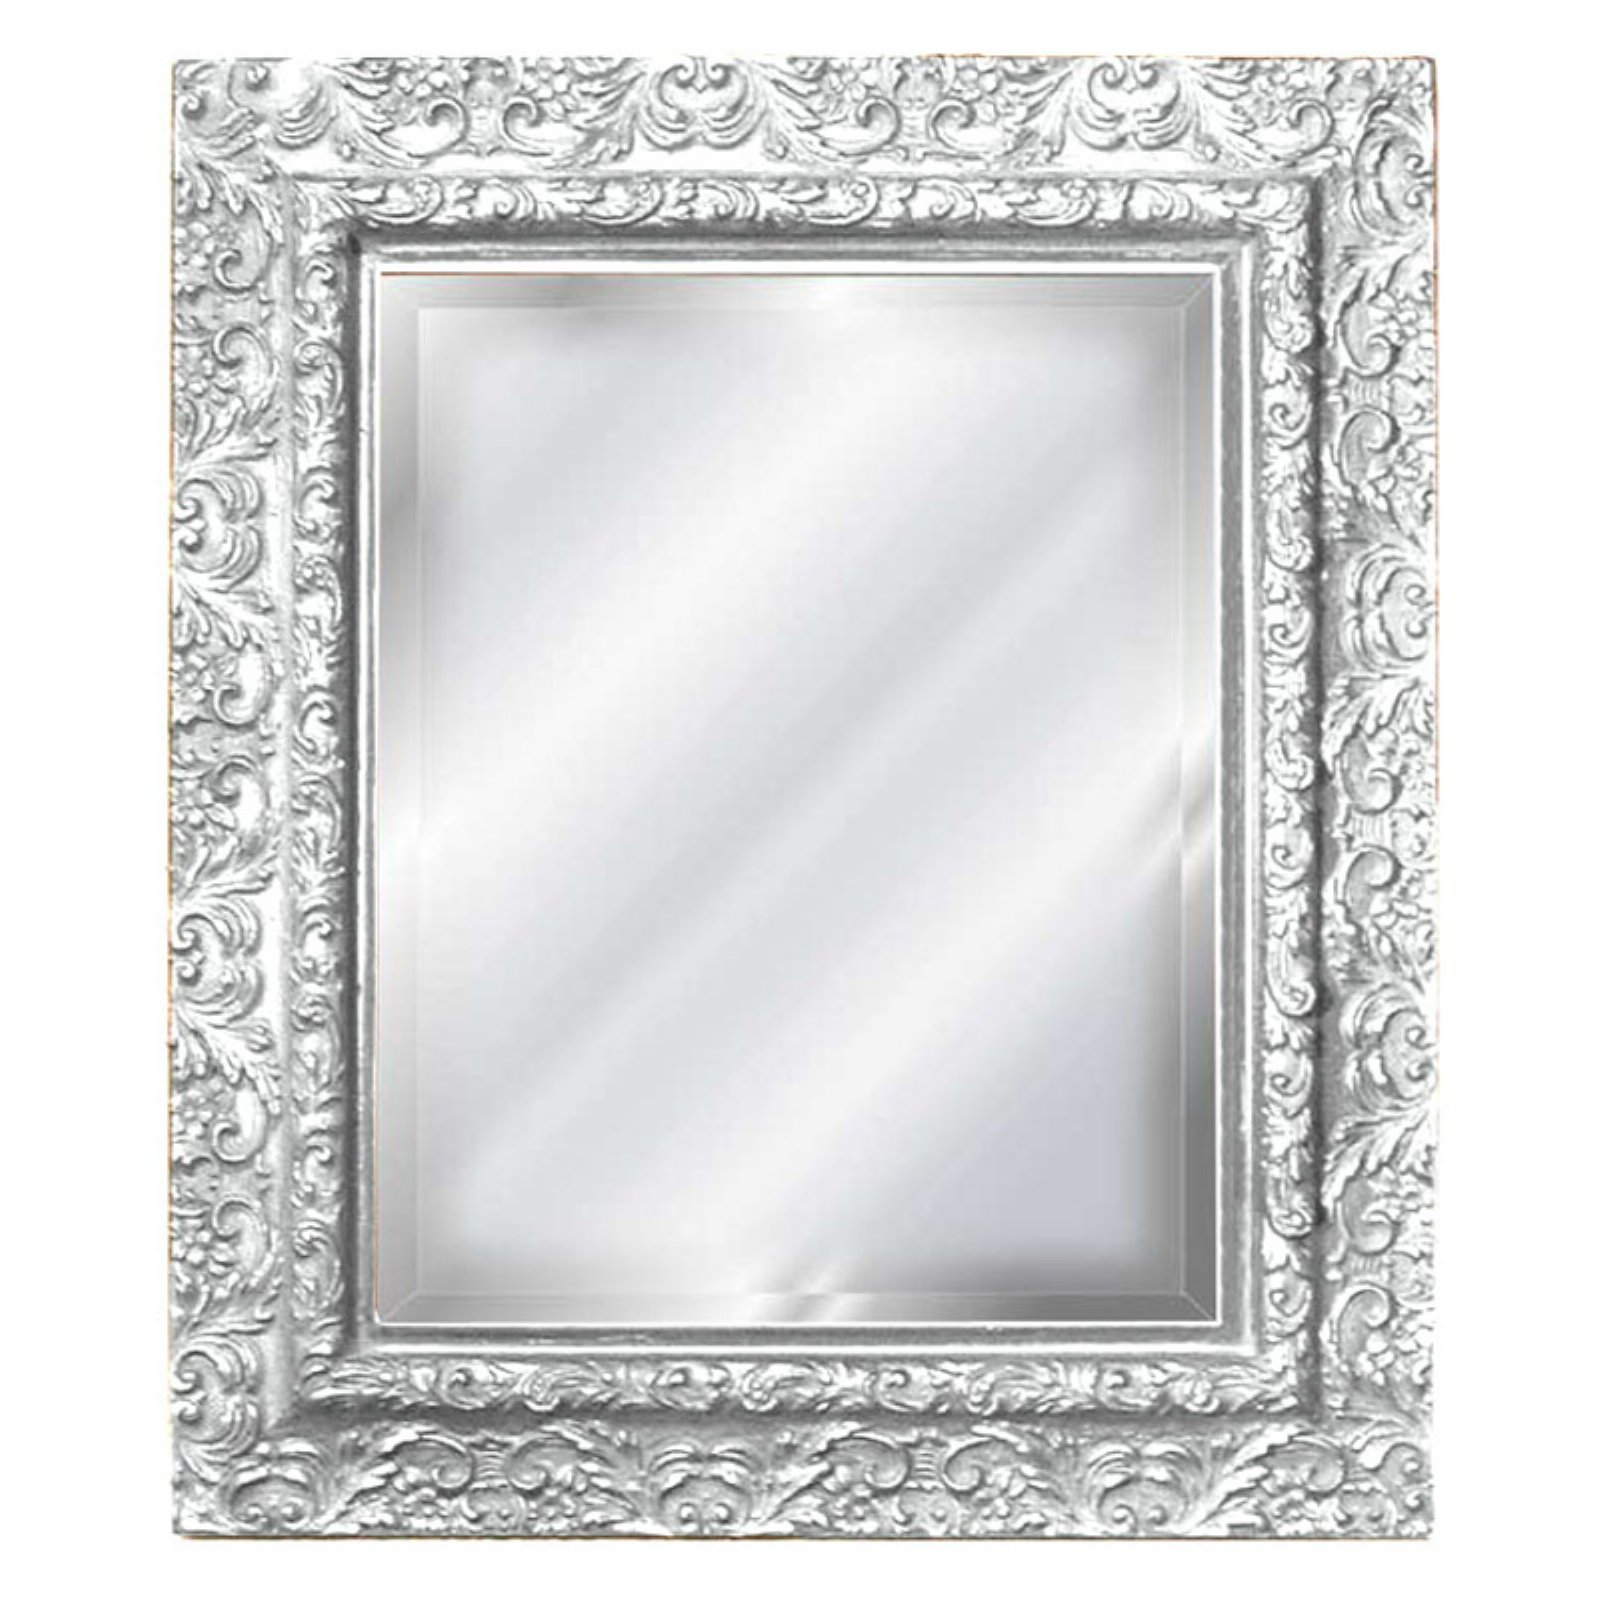 Hickory Manor House Inset Mirror - 24.5W x 27.5H in.